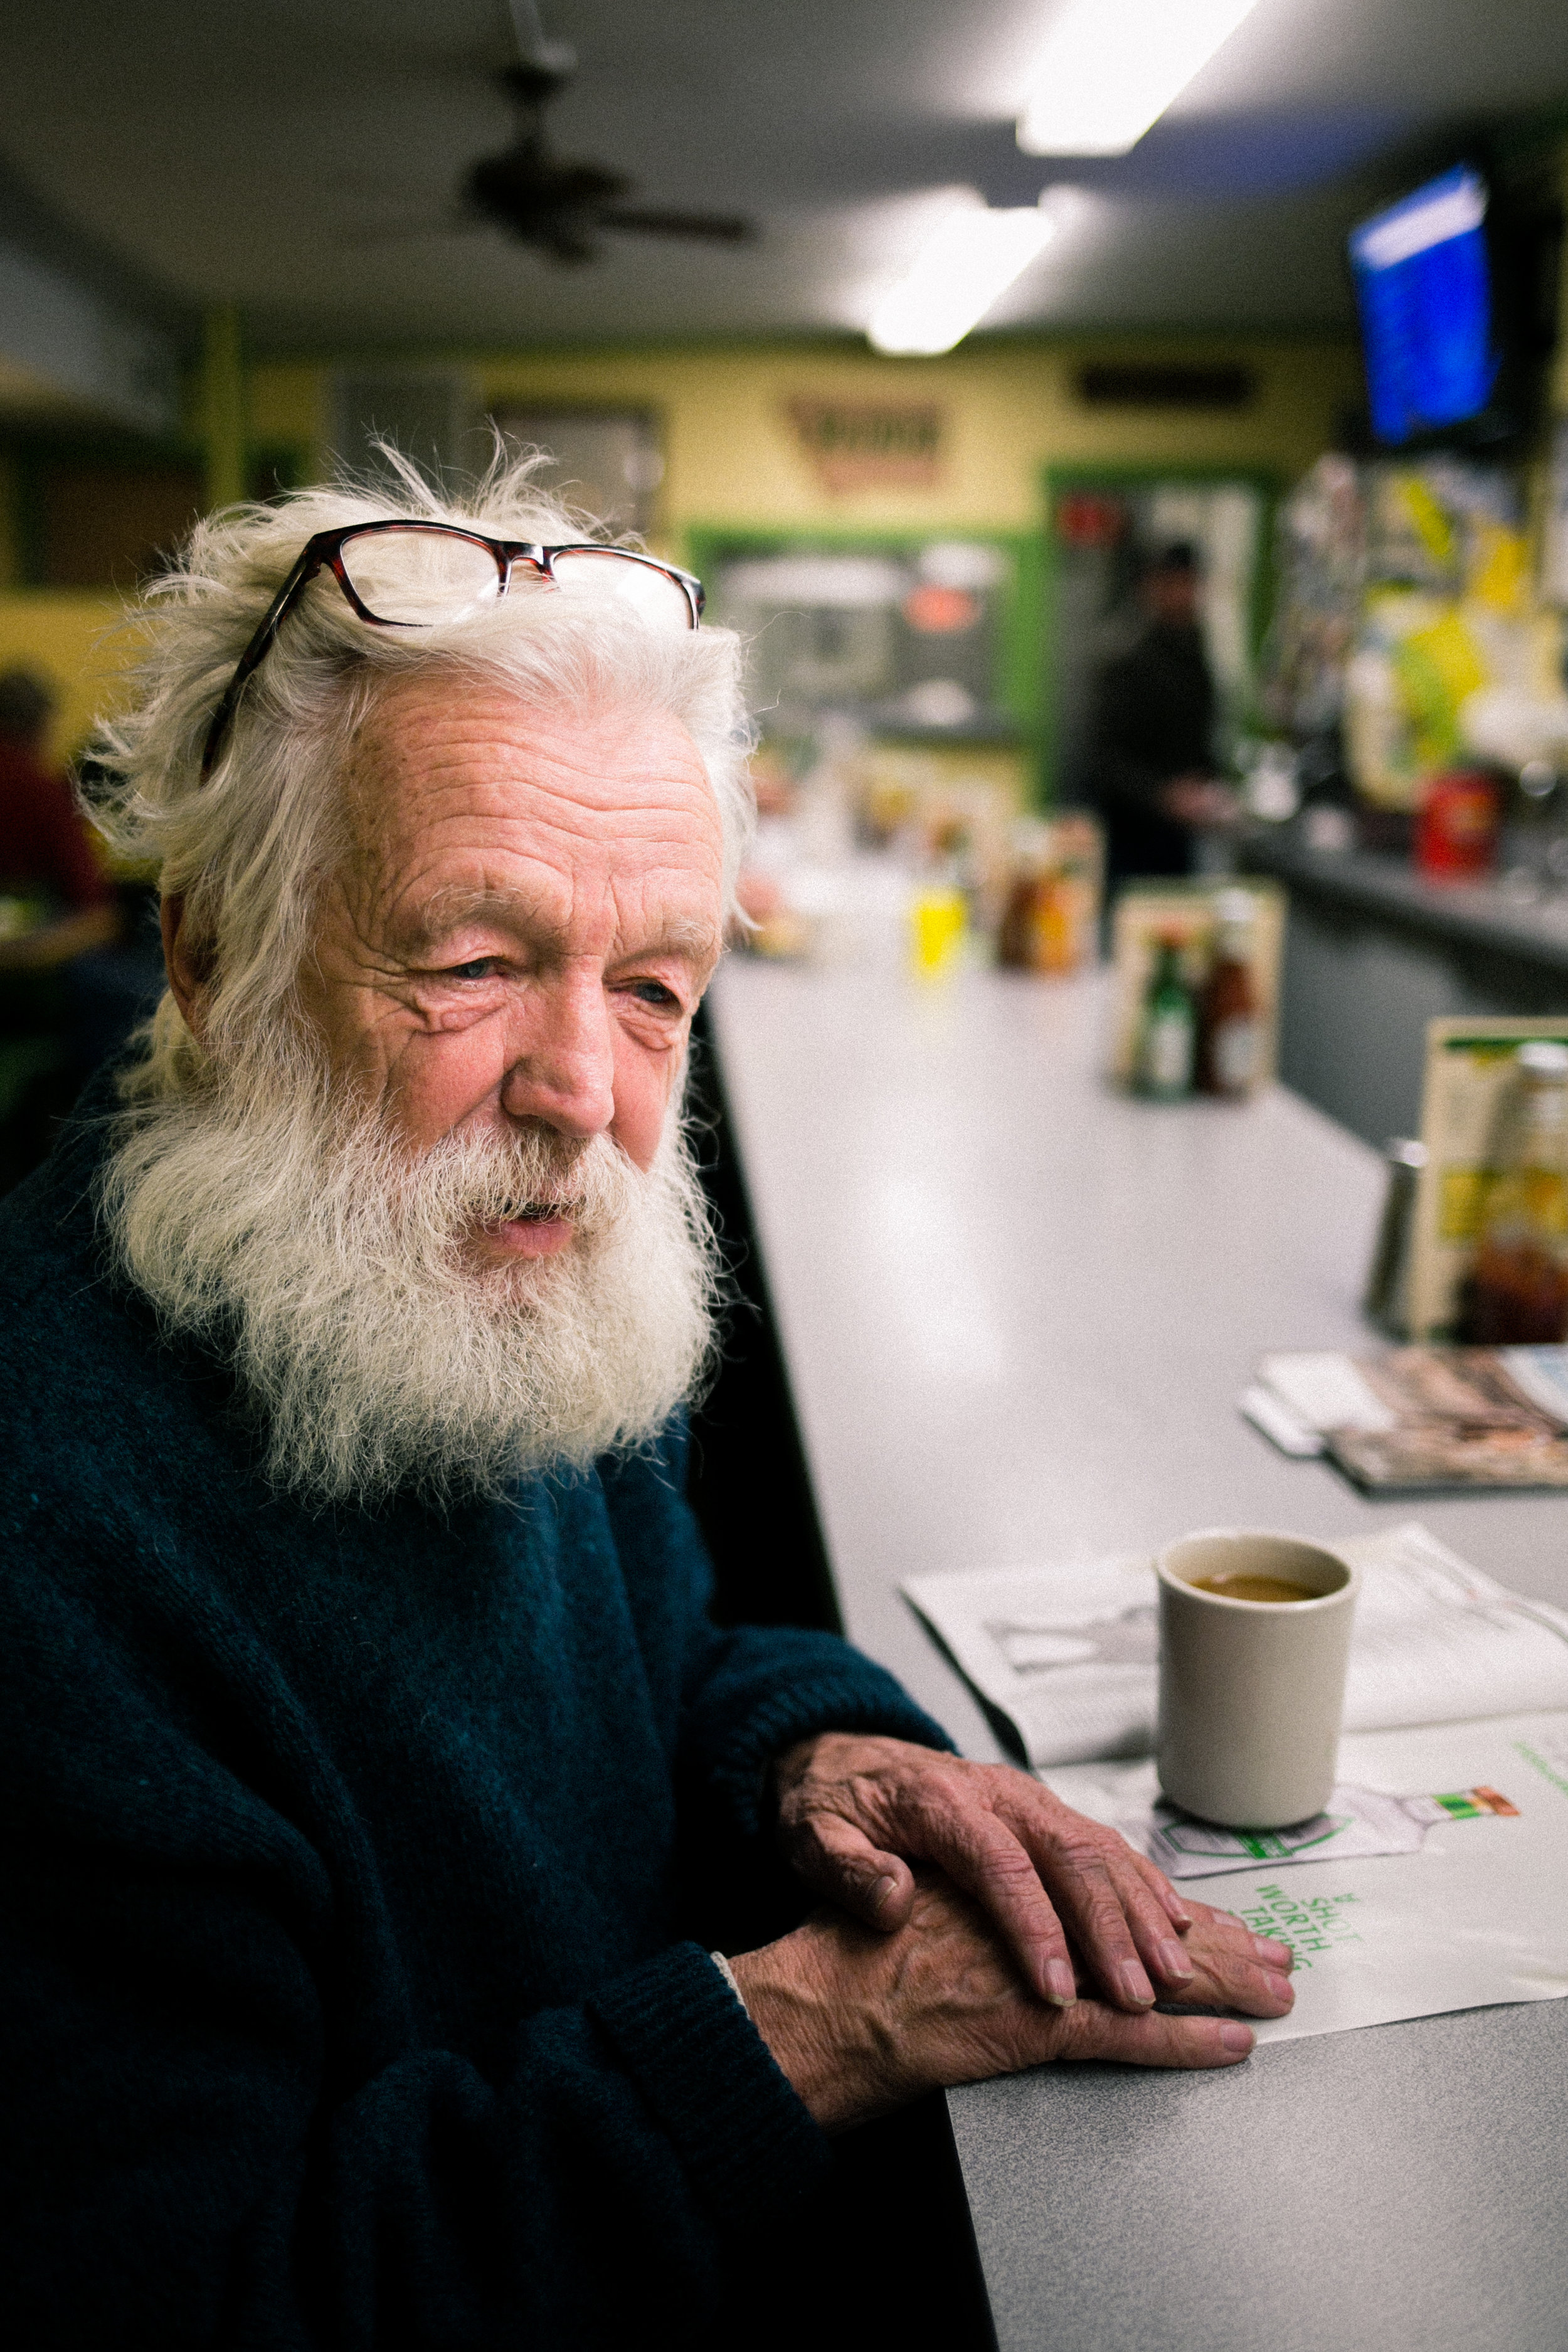 Candid portrait of customer at a diner taken in Red Lodge, Montana.